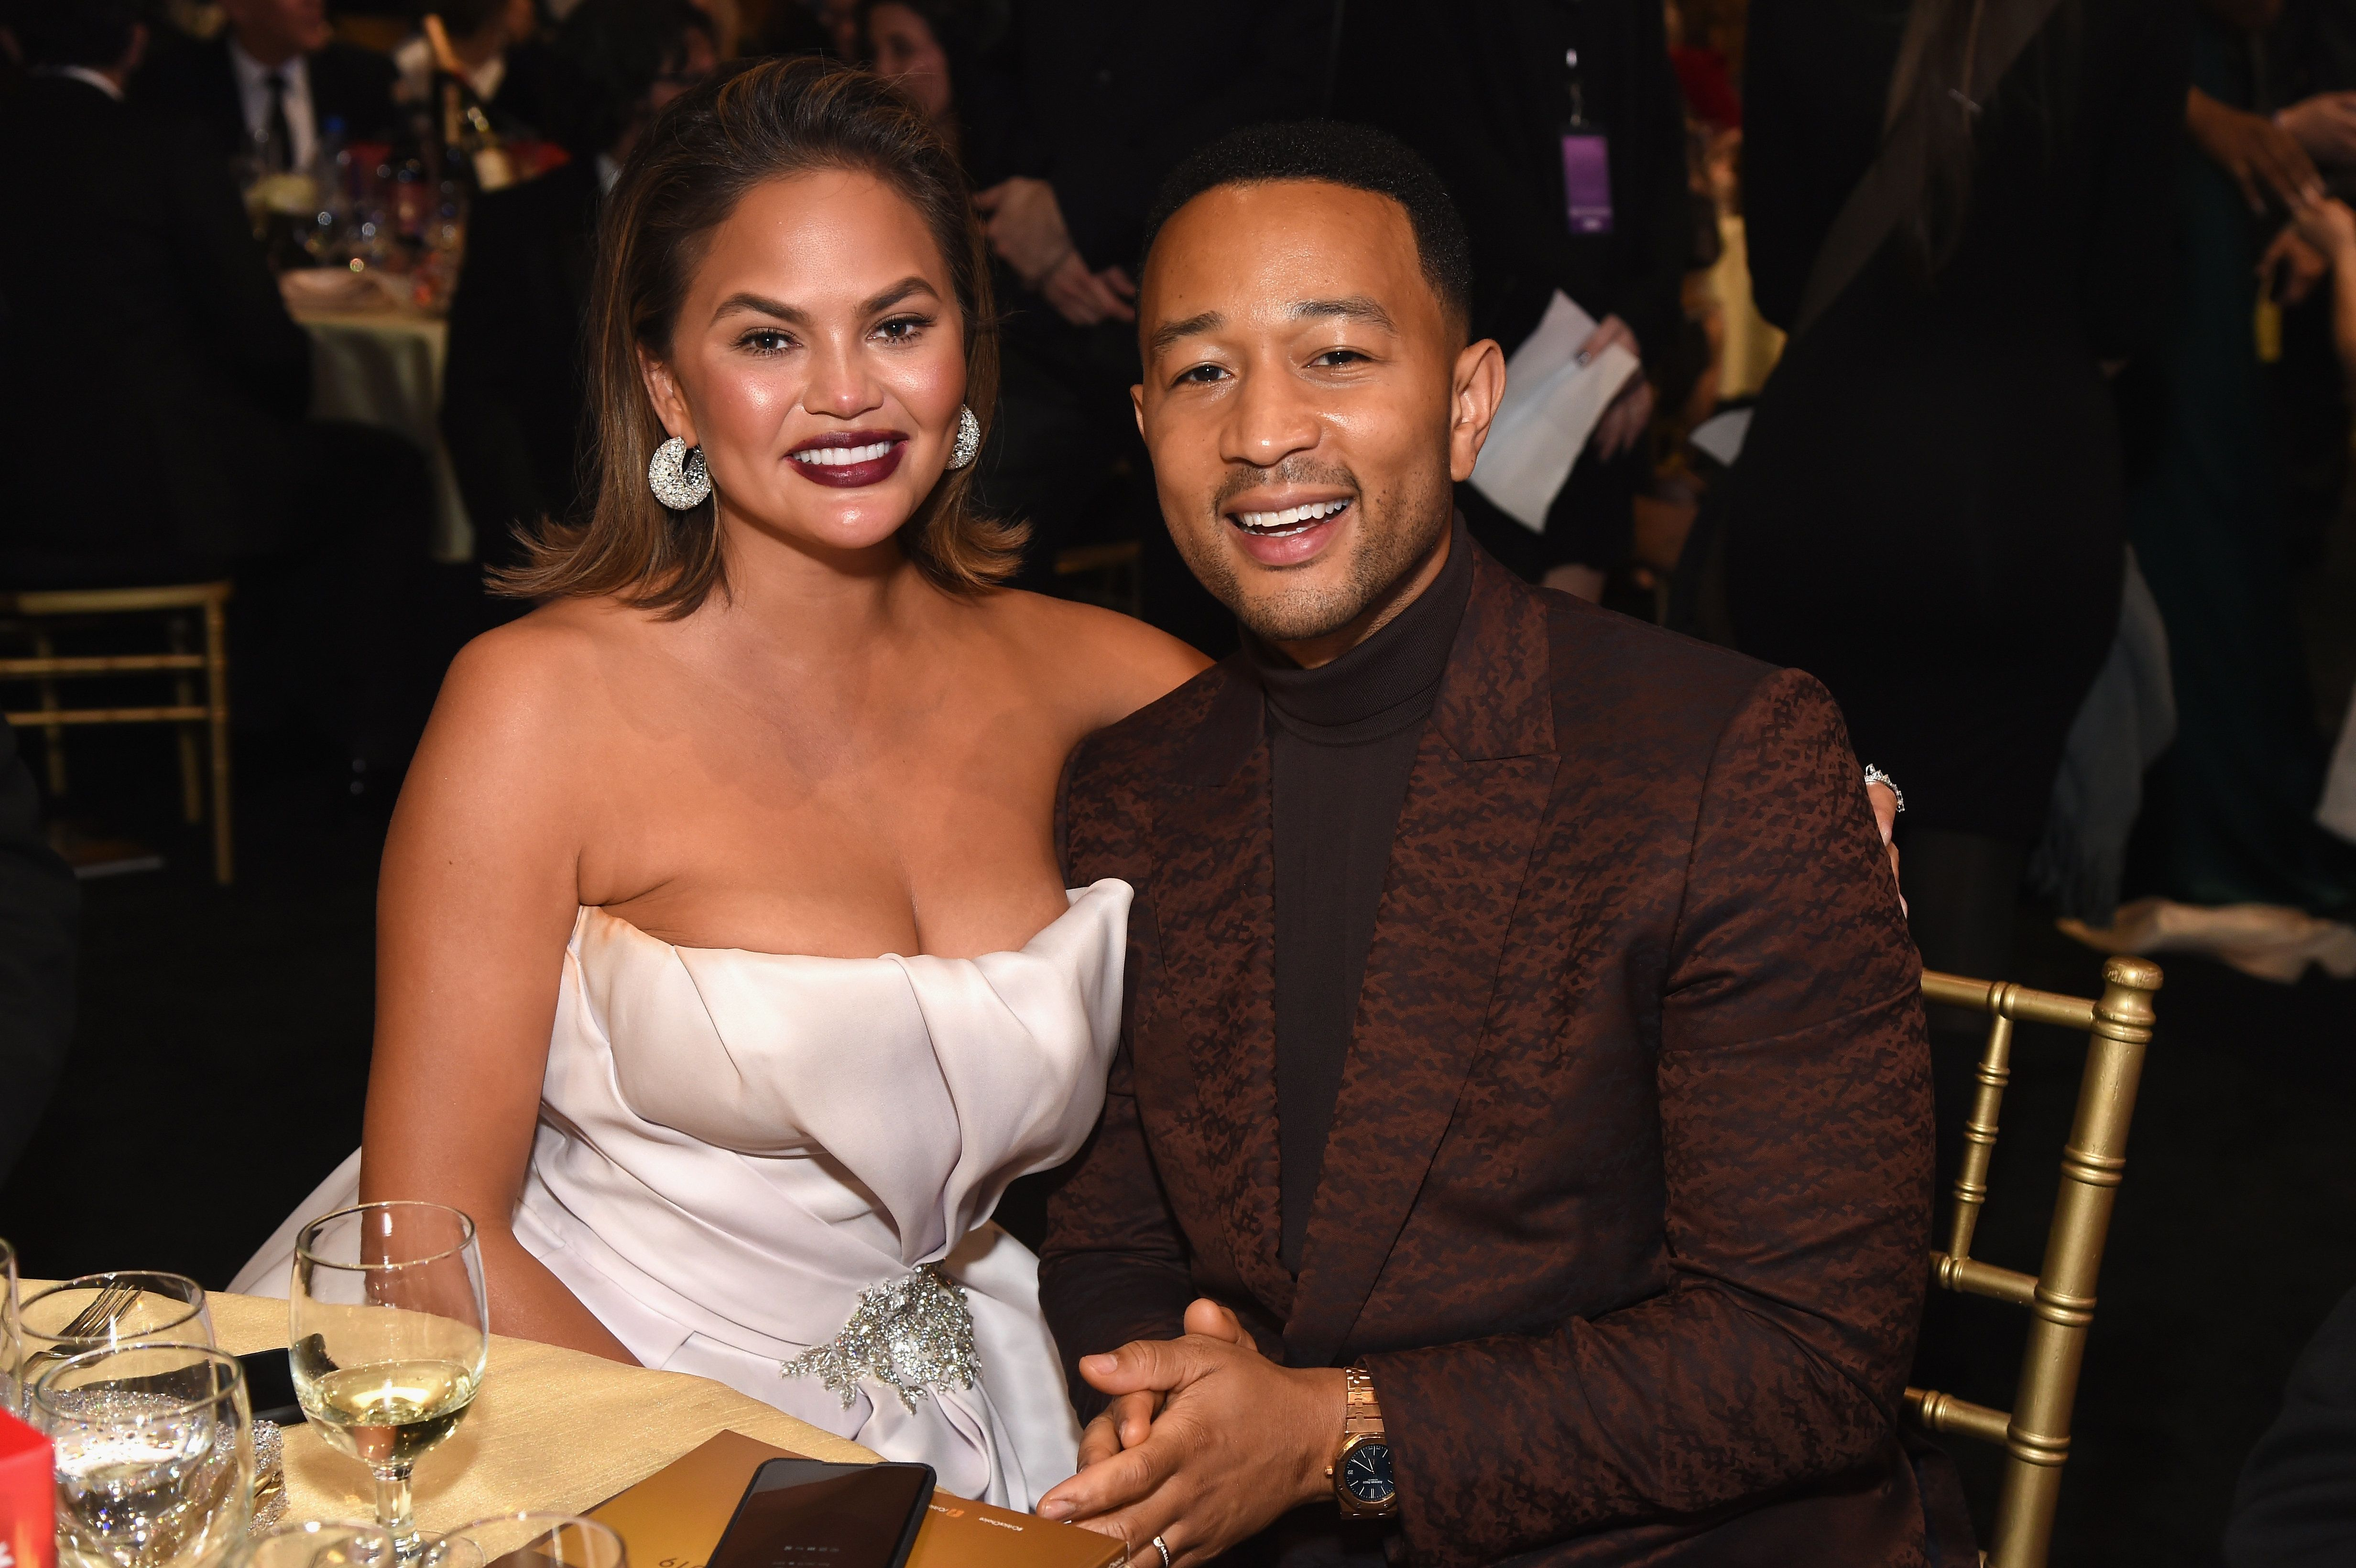 SANTA MONICA, CA - JANUARY 13:  Chrissy Teigen (L) and John Legend attend the 24th annual Critics' Choice Awards at Barker Hangar on January 13, 2019 in Santa Monica, California.  (Photo by Michael Kovac/WireImage)